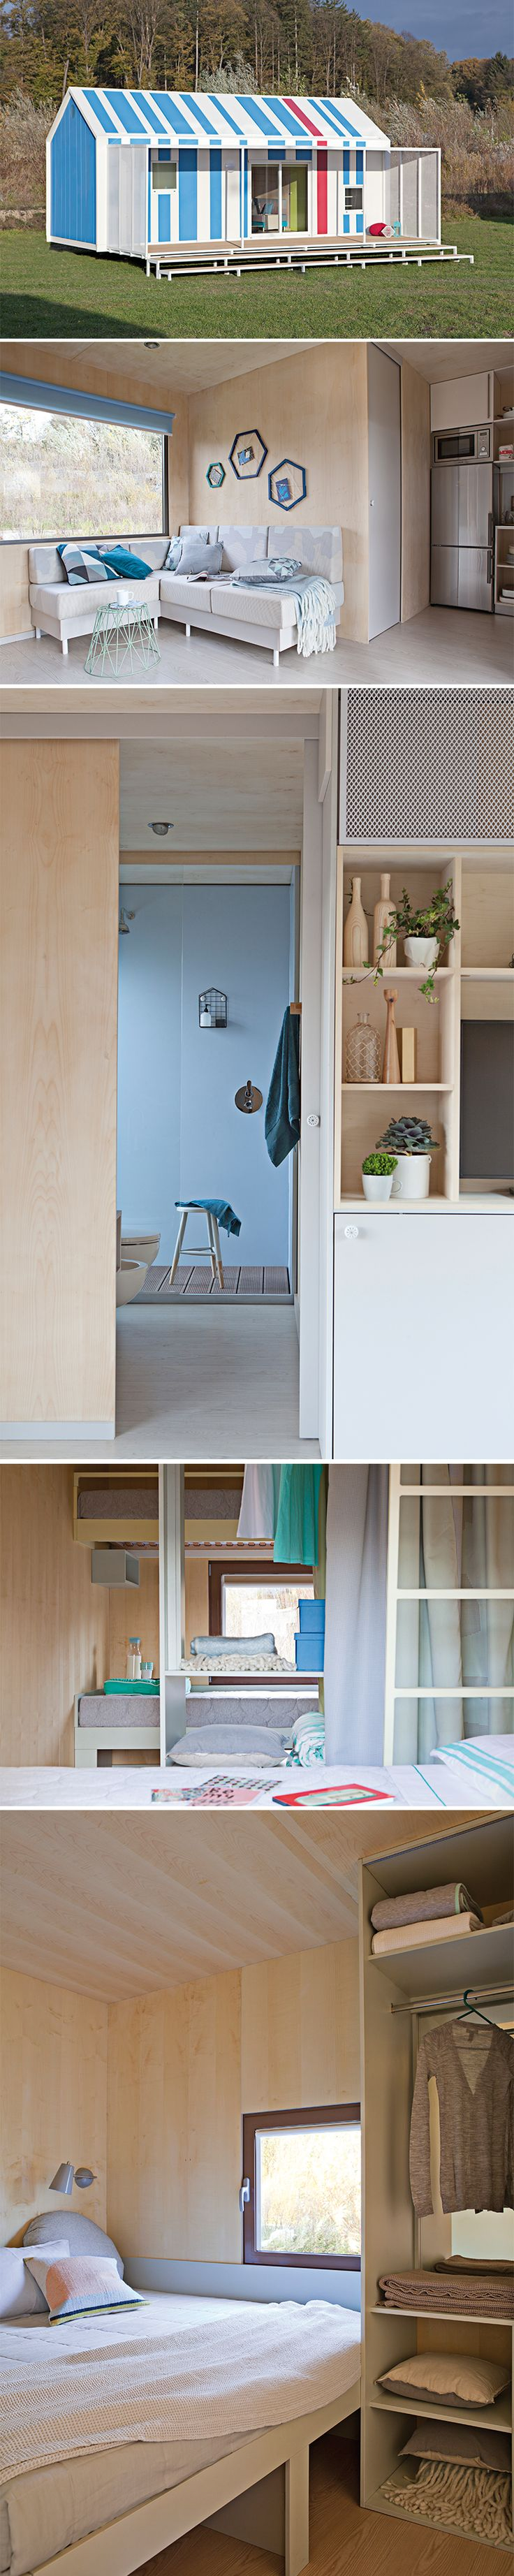 BIG BERRY mobile house interior. Minimalistic, modern, appropriate.